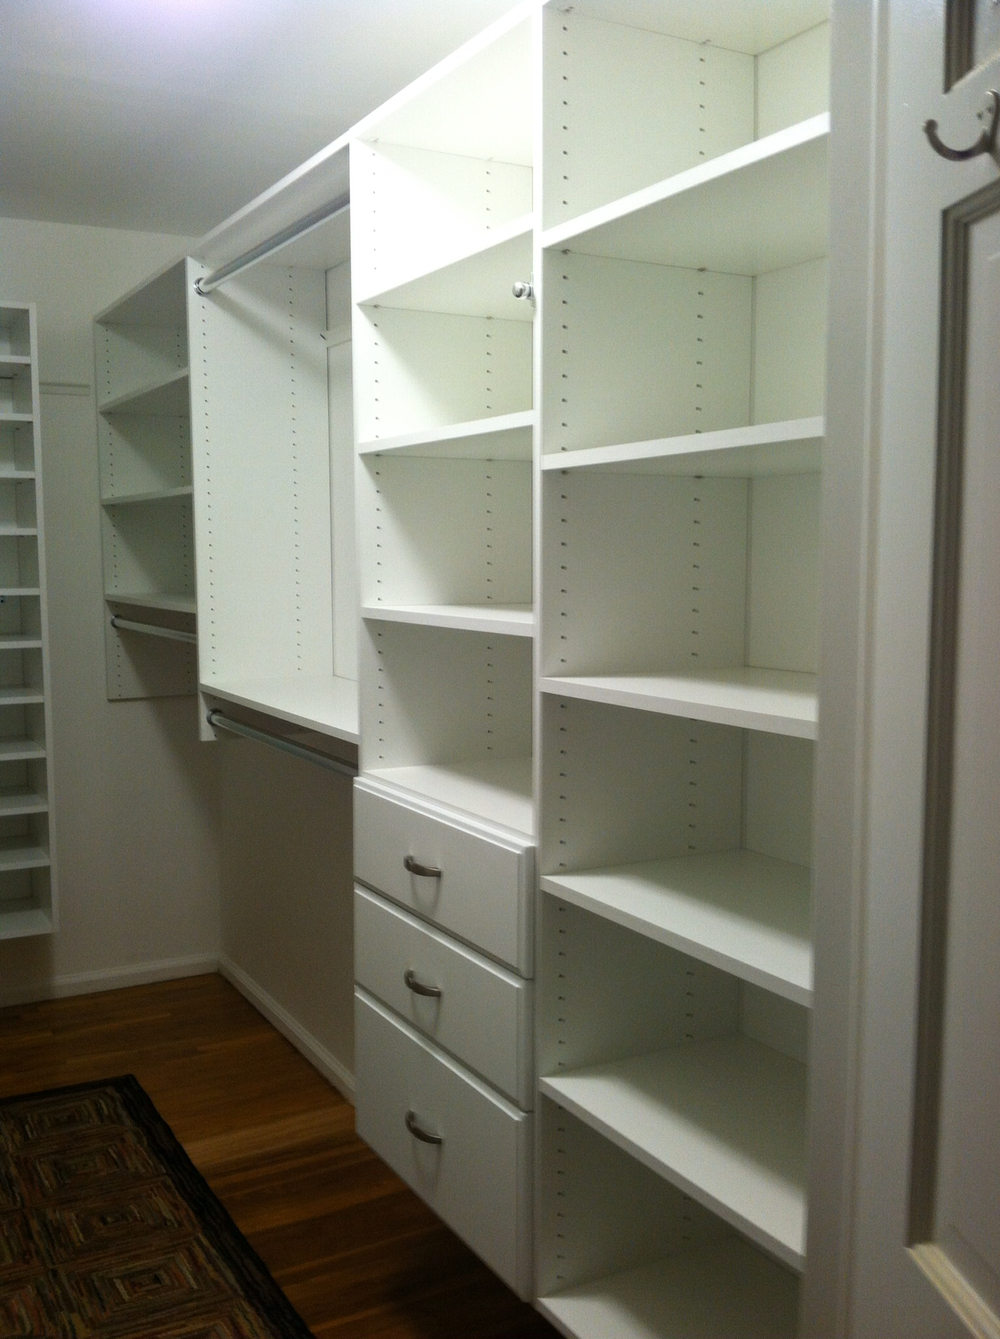 Master Bedroom Closet: After